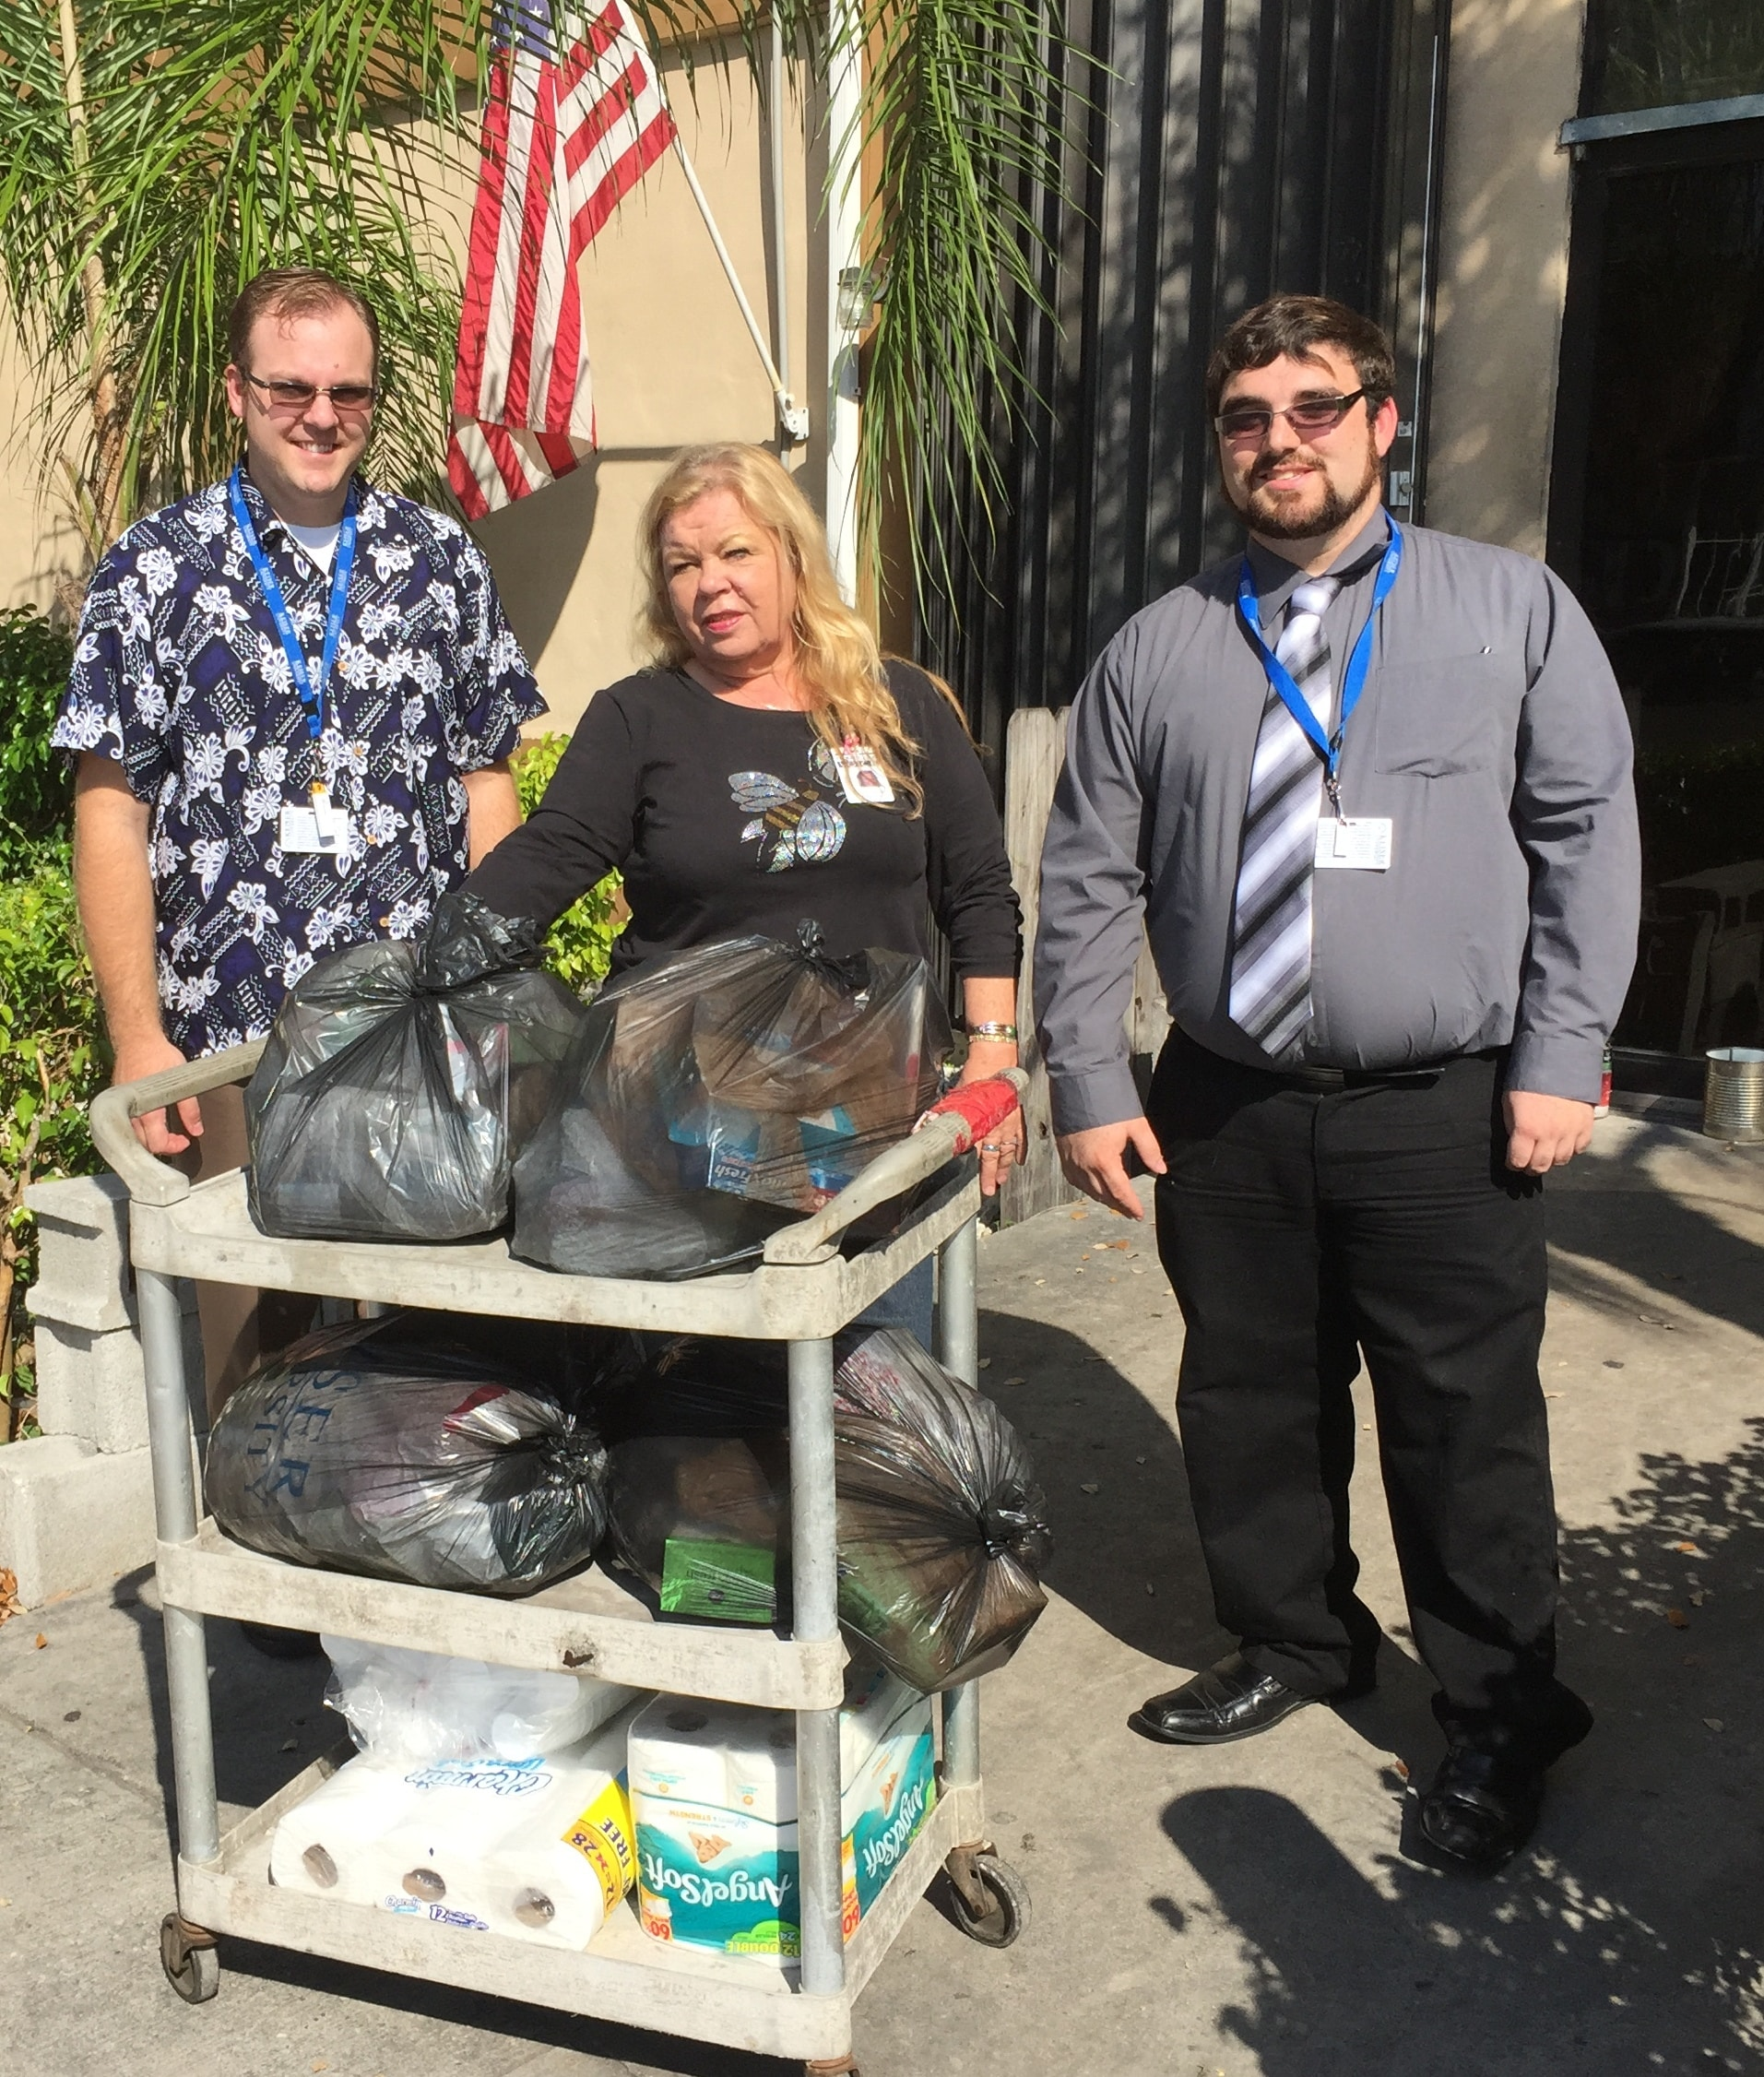 The NSNA and PTK at the Ft. Lauderdale Campus Make a Donation to The Homeless Voice